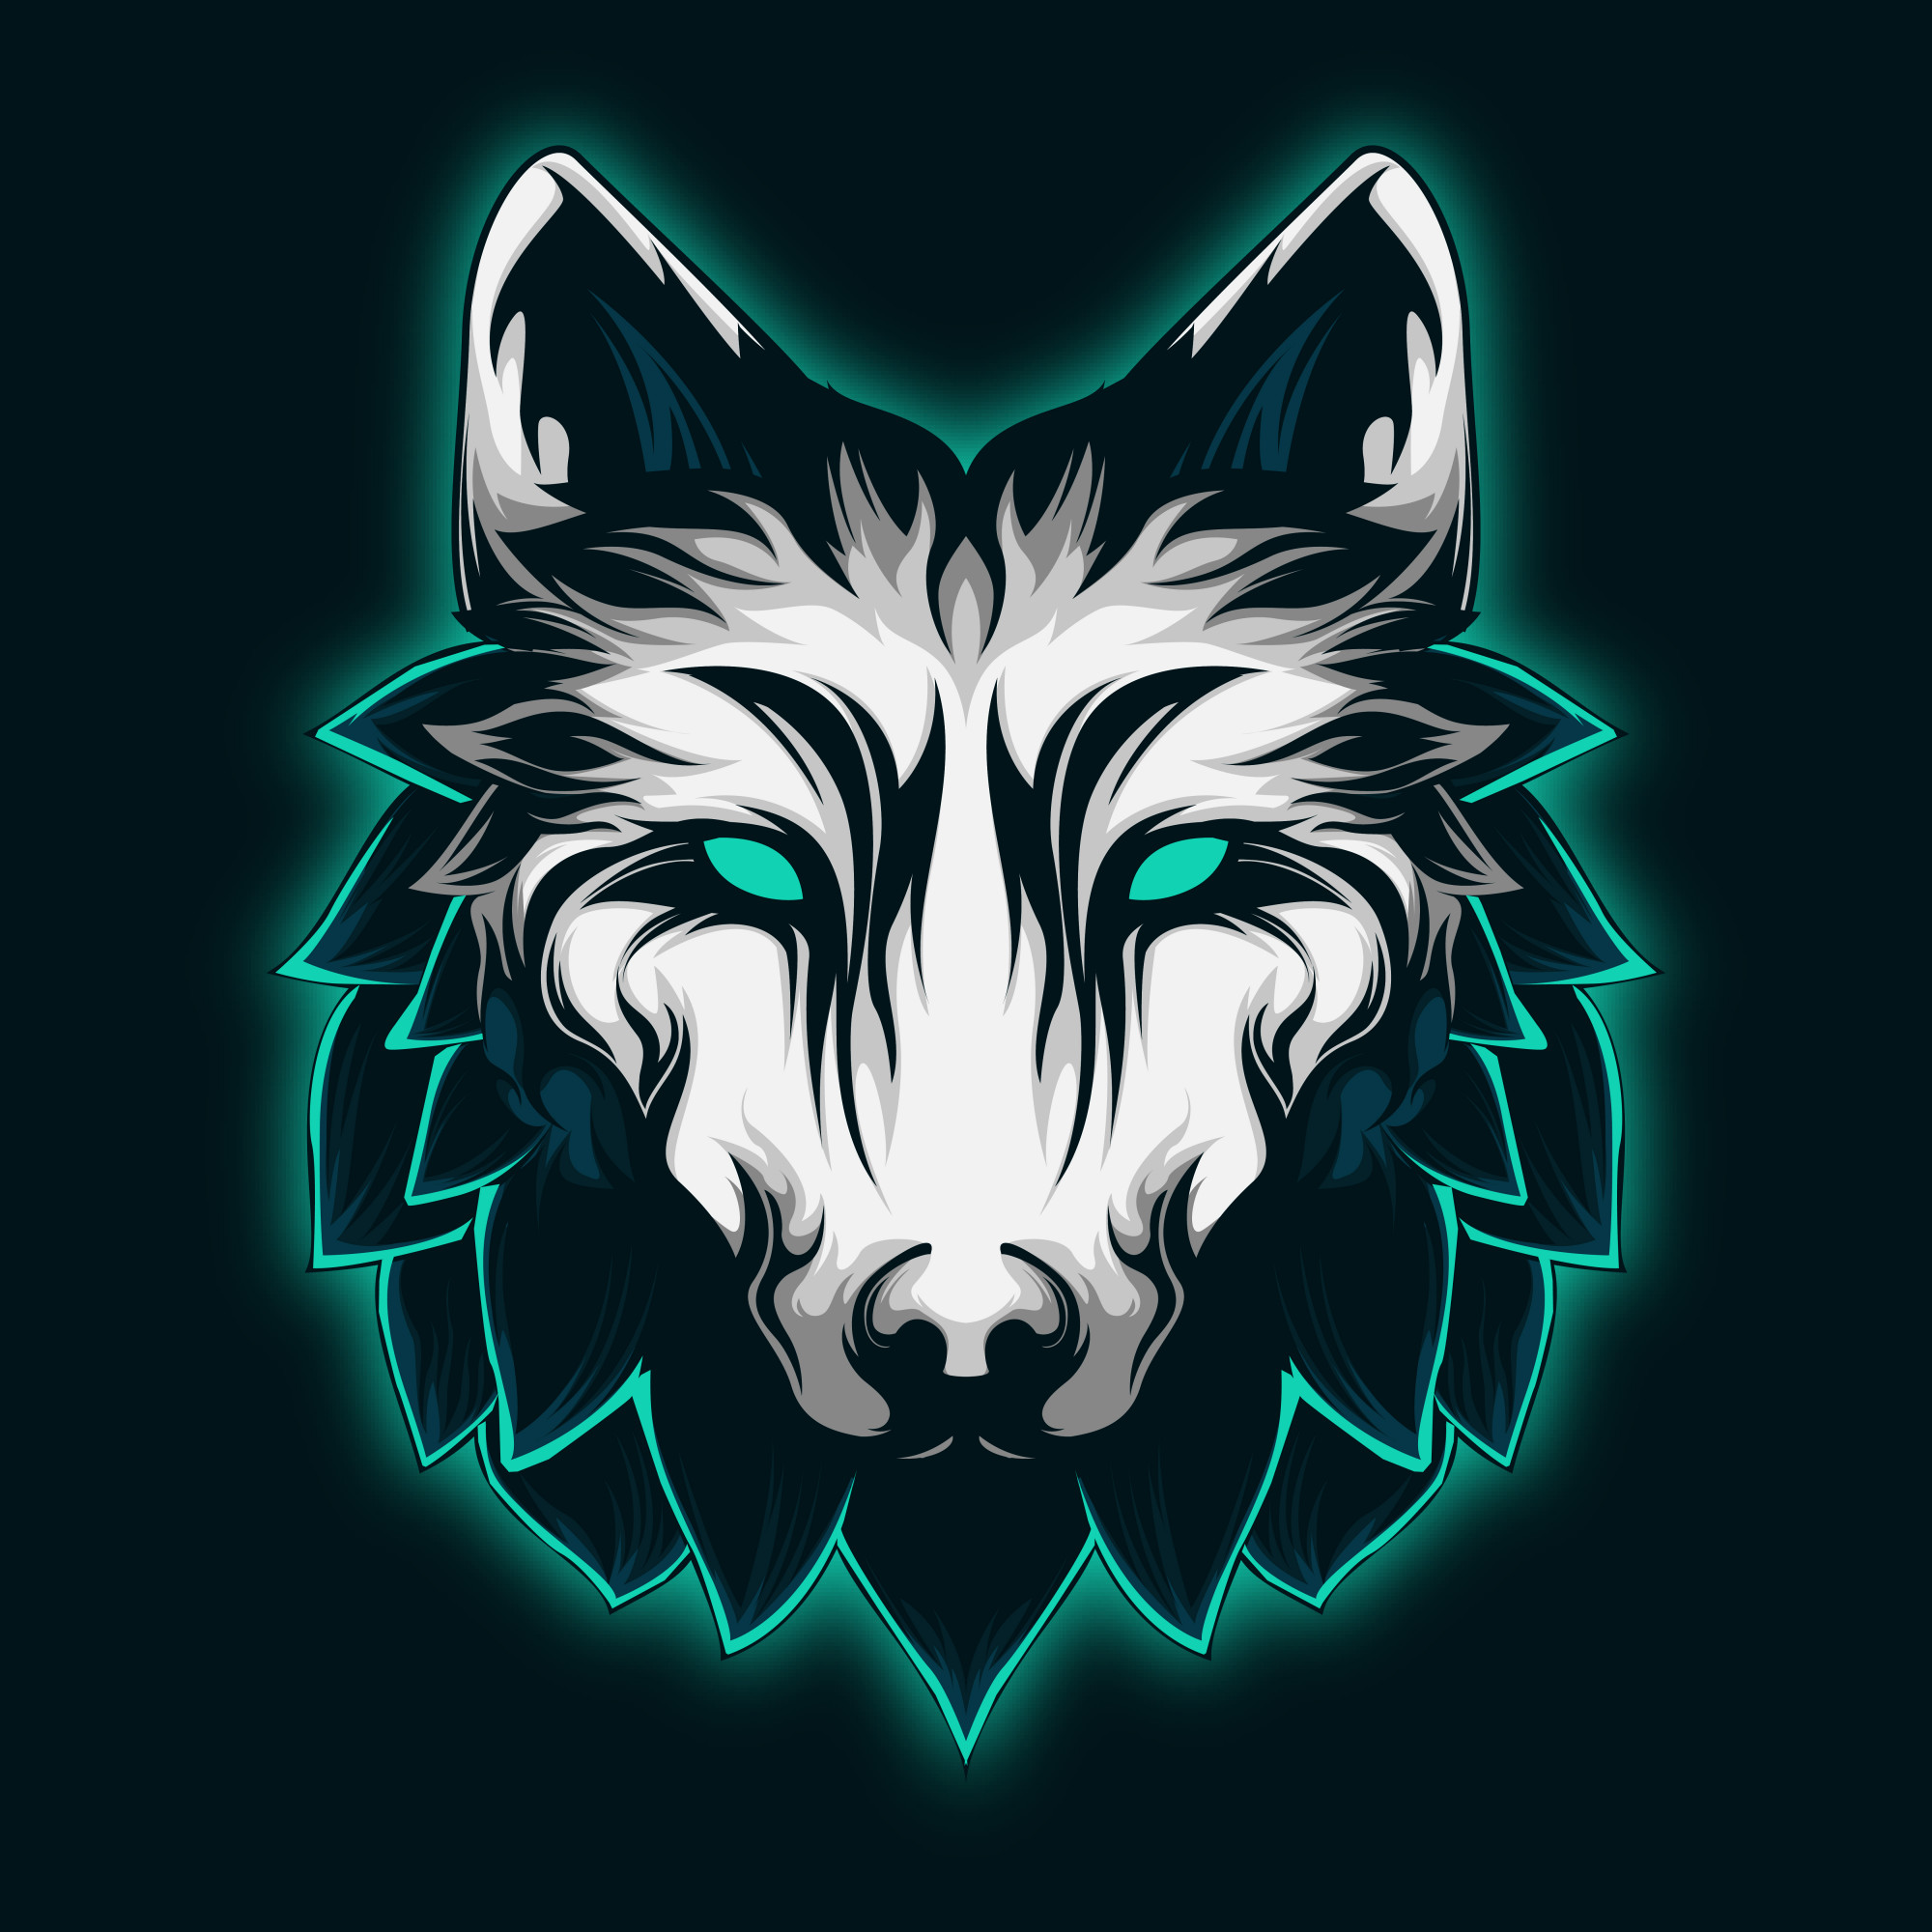 Cool and Majestic Mint Wolf